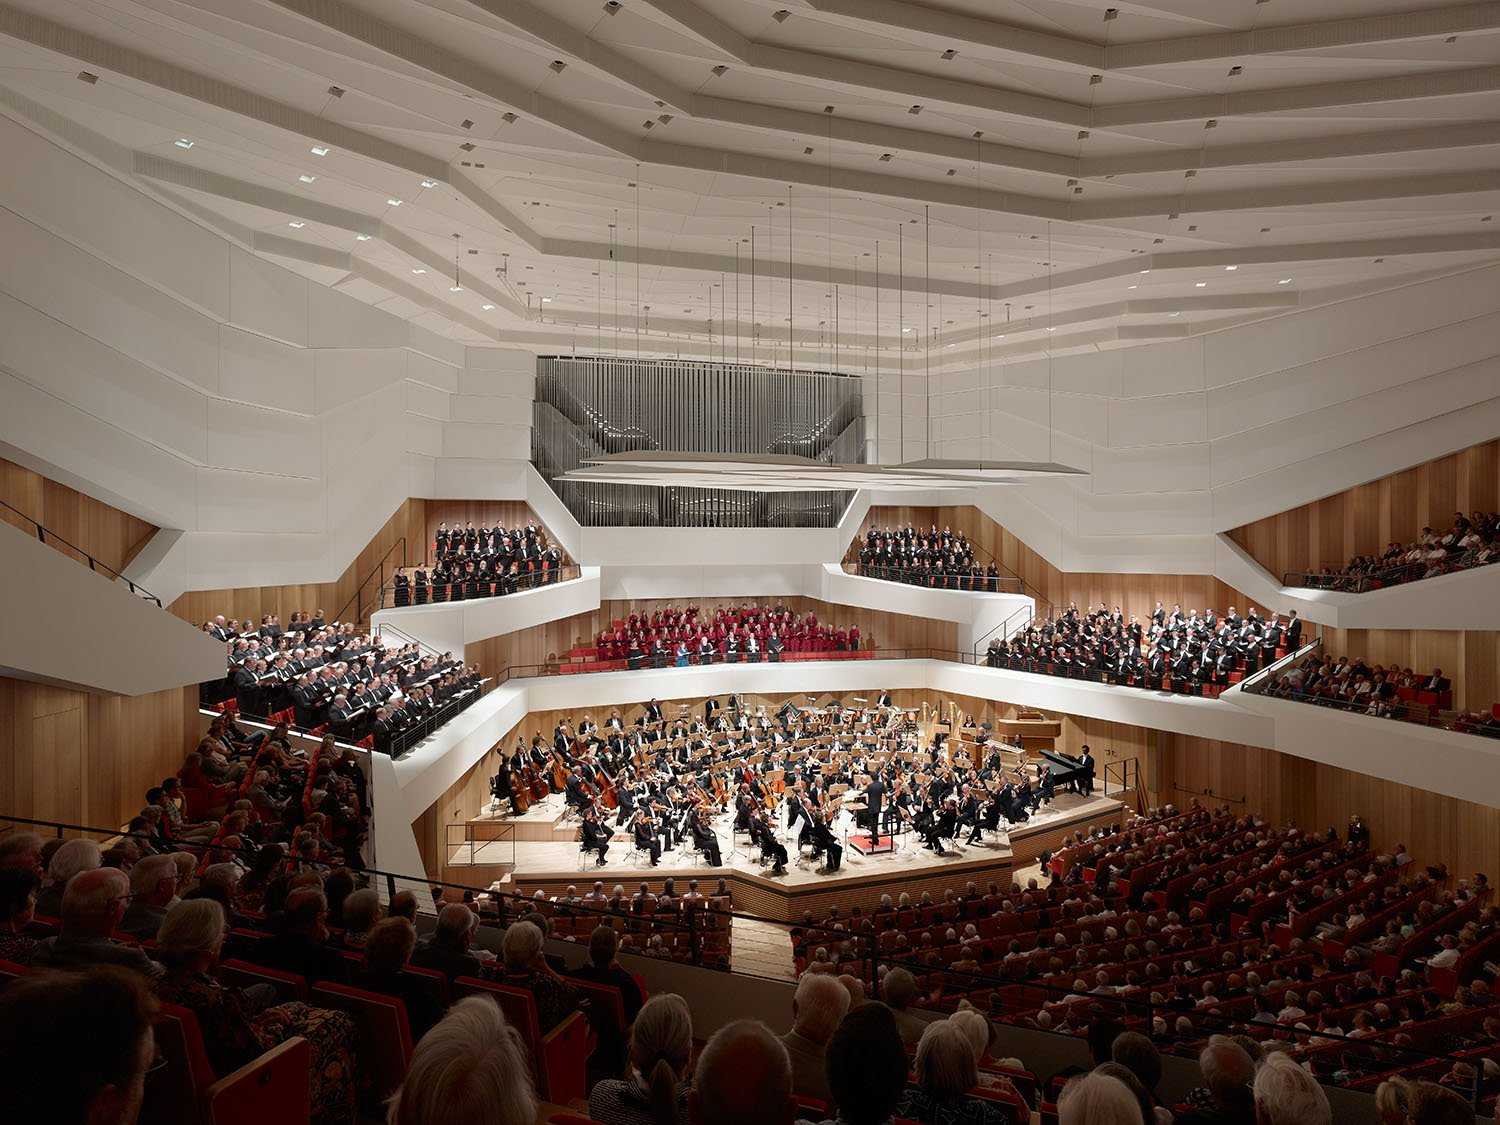 The concert hall has seating for a 1750-strong audience. Christian Gahl